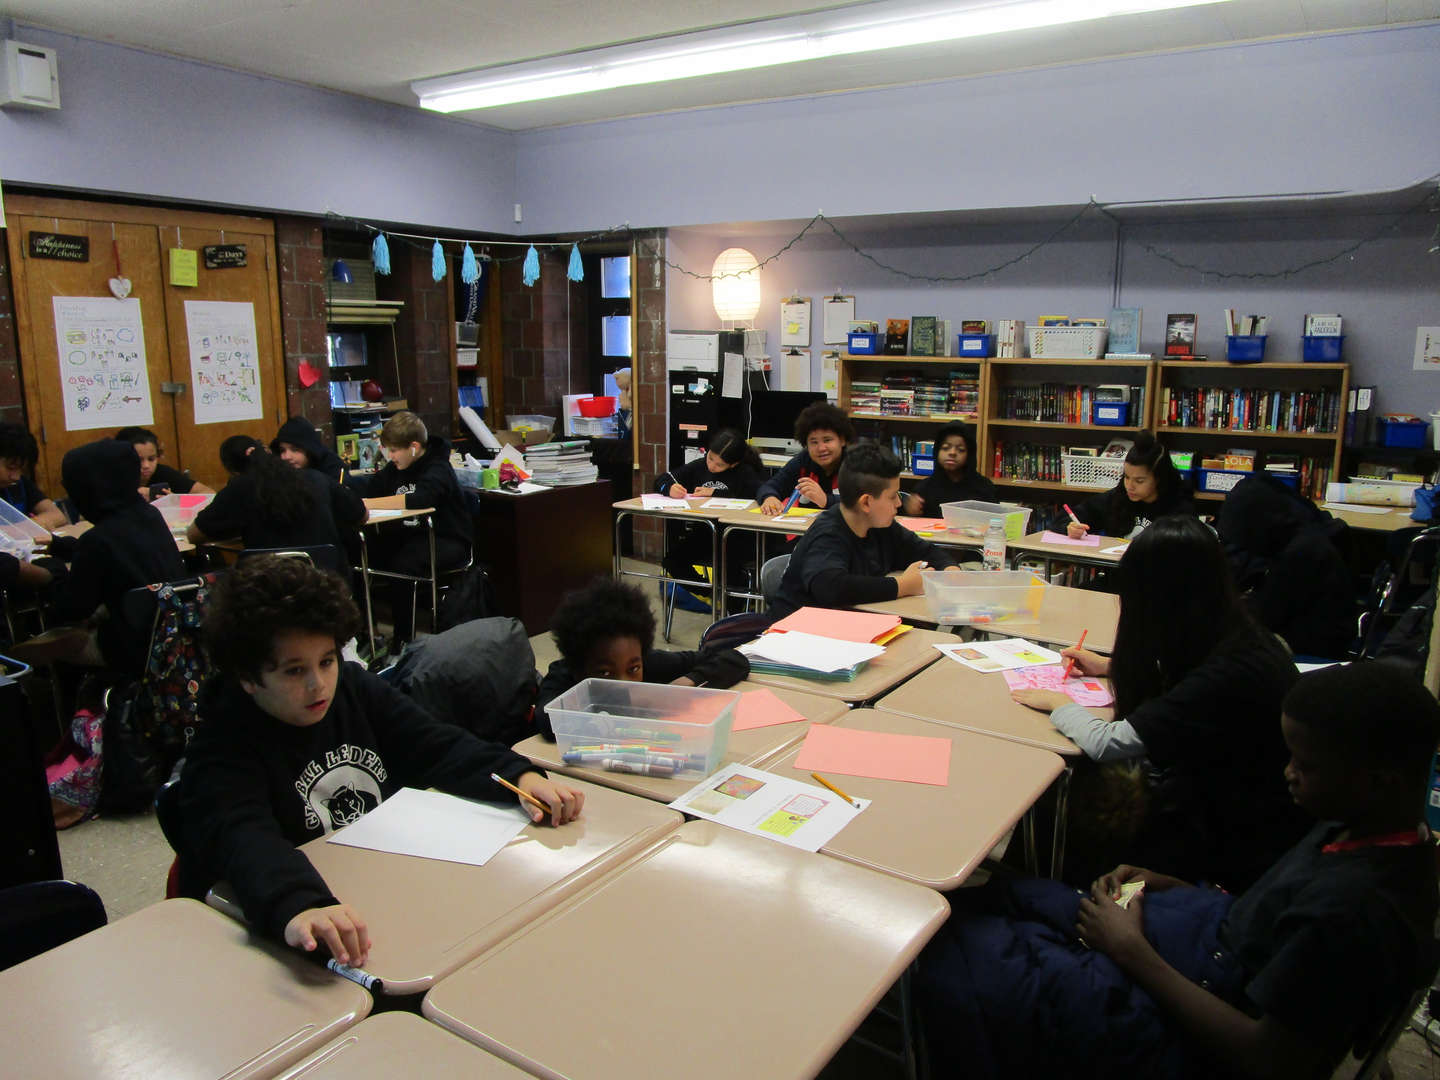 Students in a classroom working.